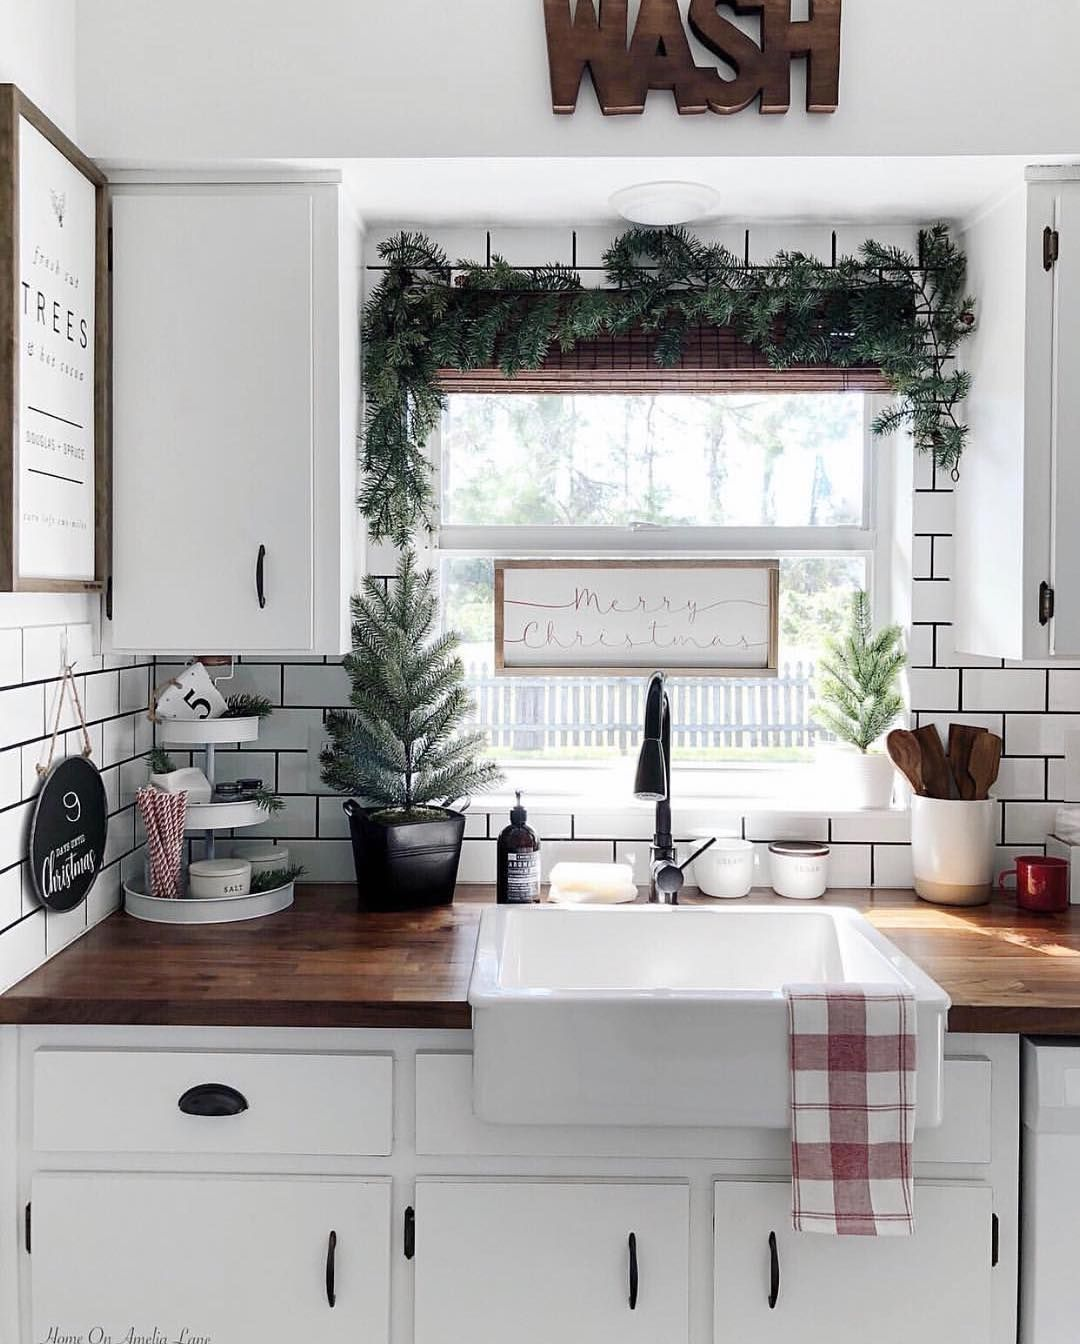 20 CHRISTMAS KITCHEN DECOR IDEAS WITH YOU 2020 - Page 19 of 20 - newyearlights. com